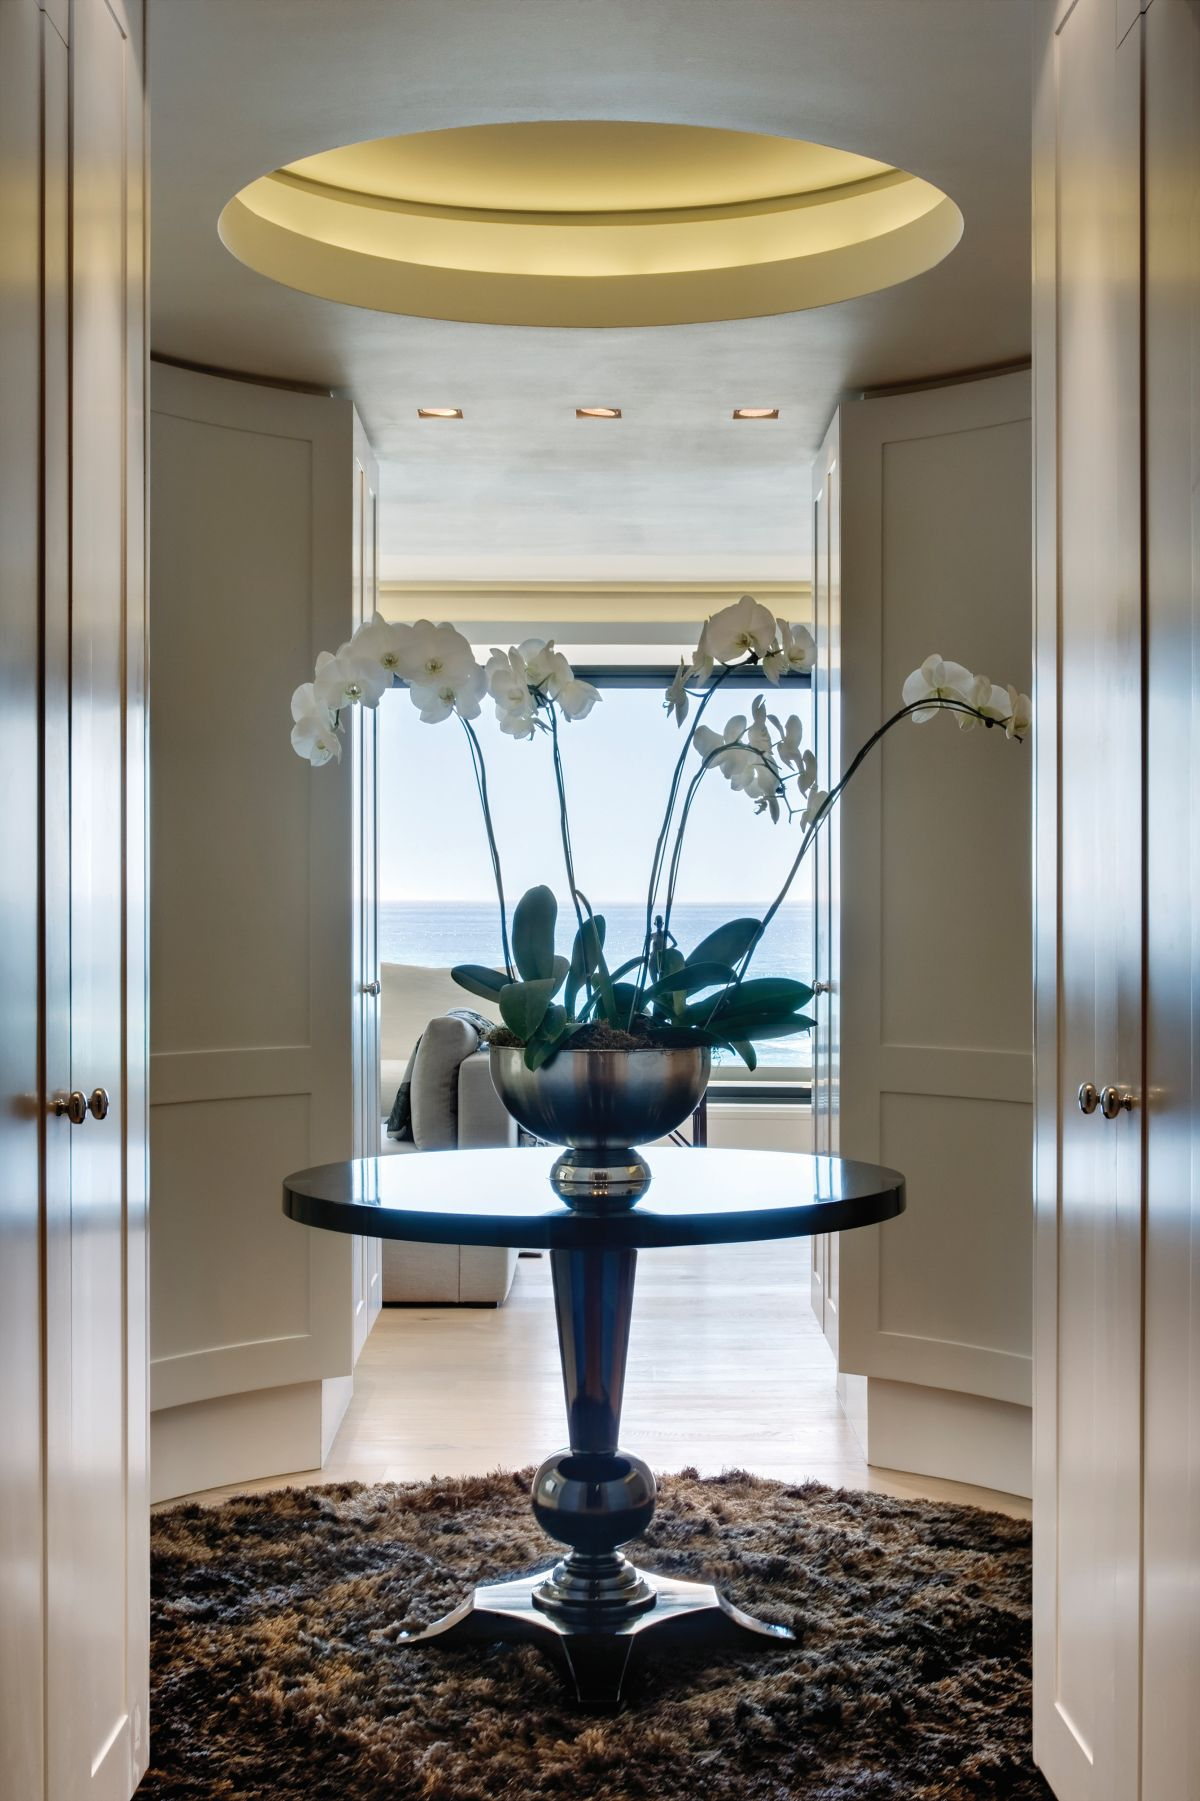 A circular lobby just off the master suite features an opening in the ceiling with built-in mood lighting